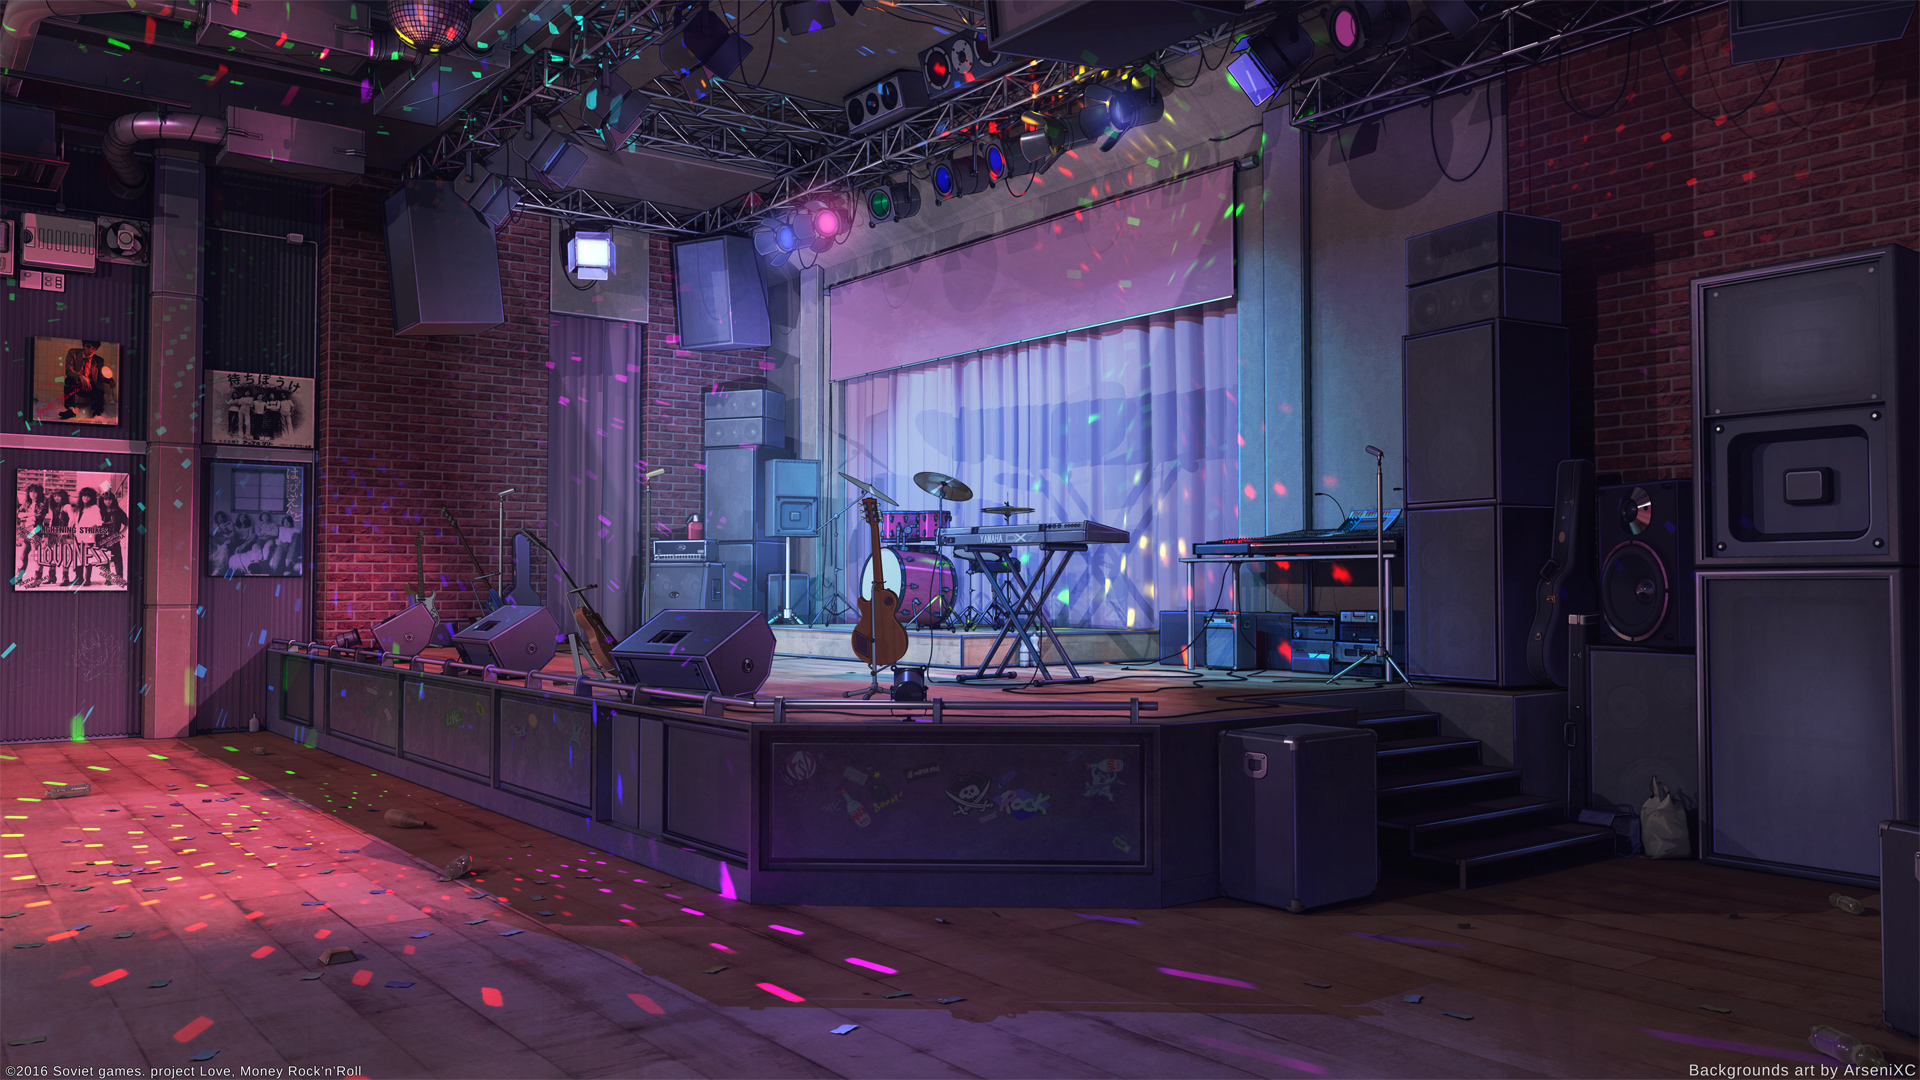 Stage Human Person Crowd Interior Design Resized By Ze Robot